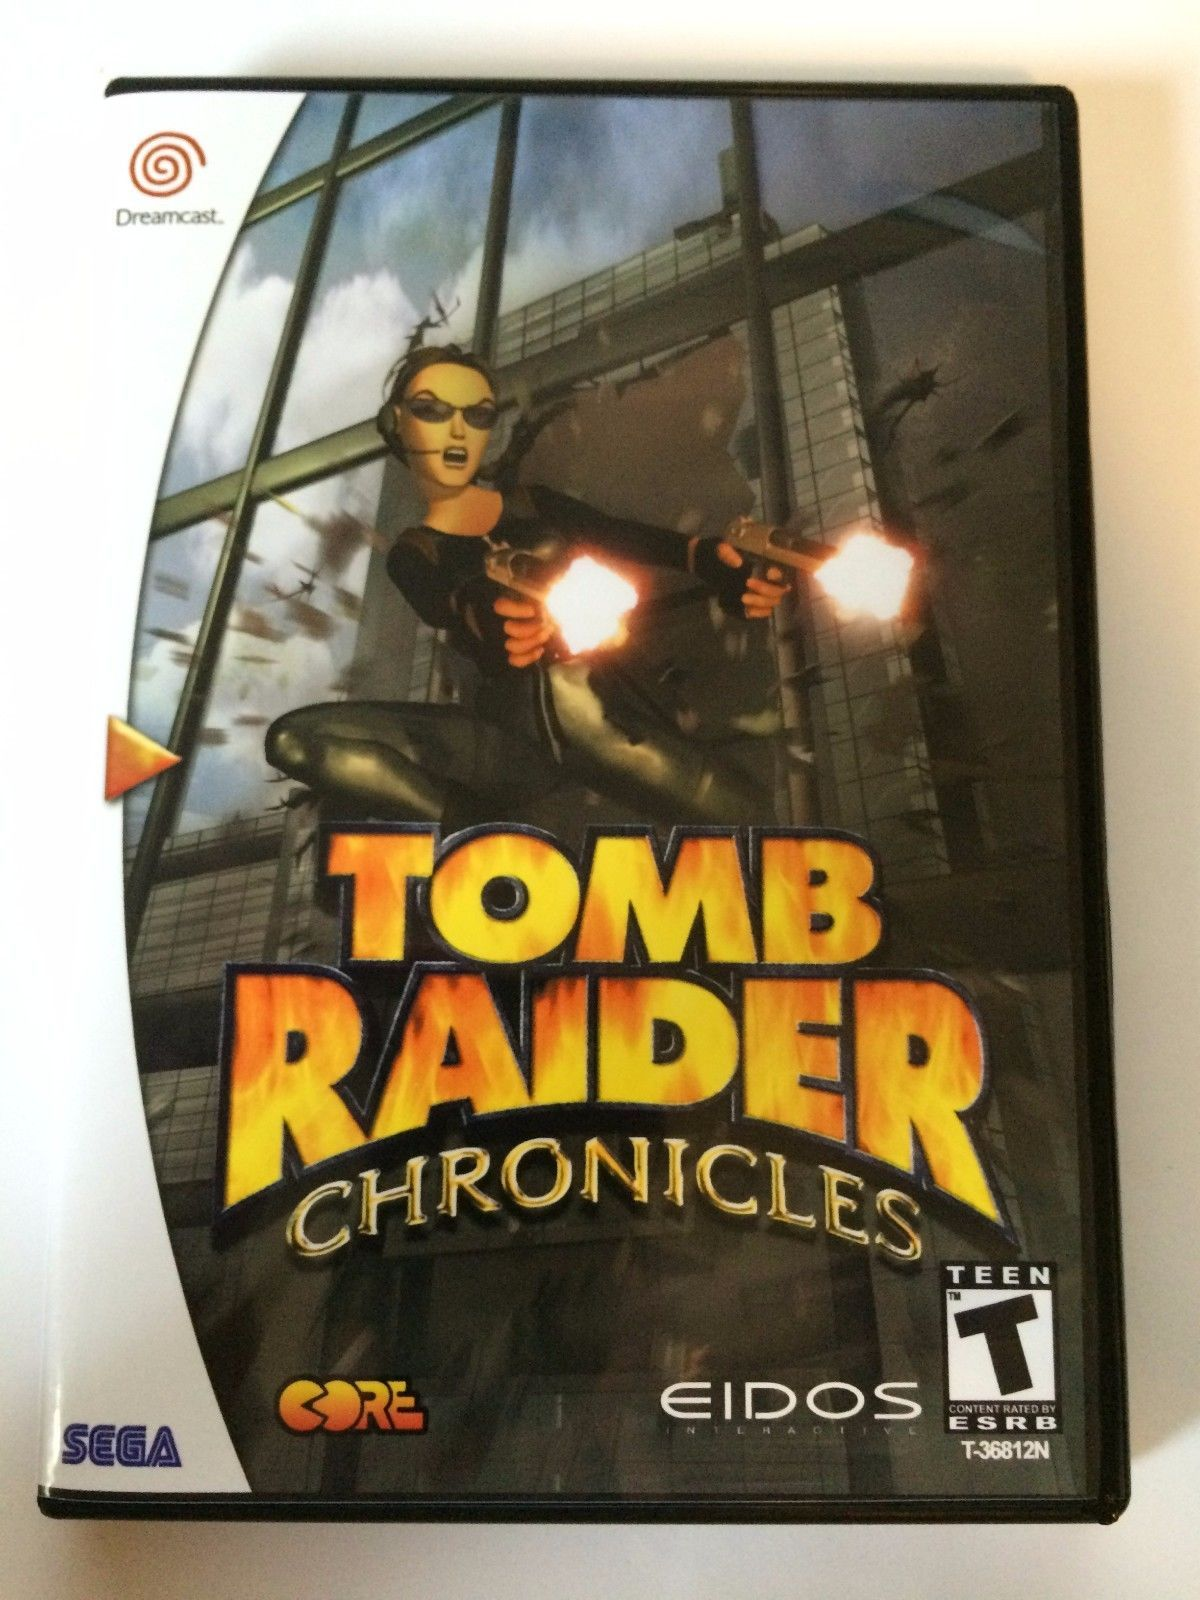 Tomb Raider Chronicles - Sega Dreamcast - Replacement Case - No Game